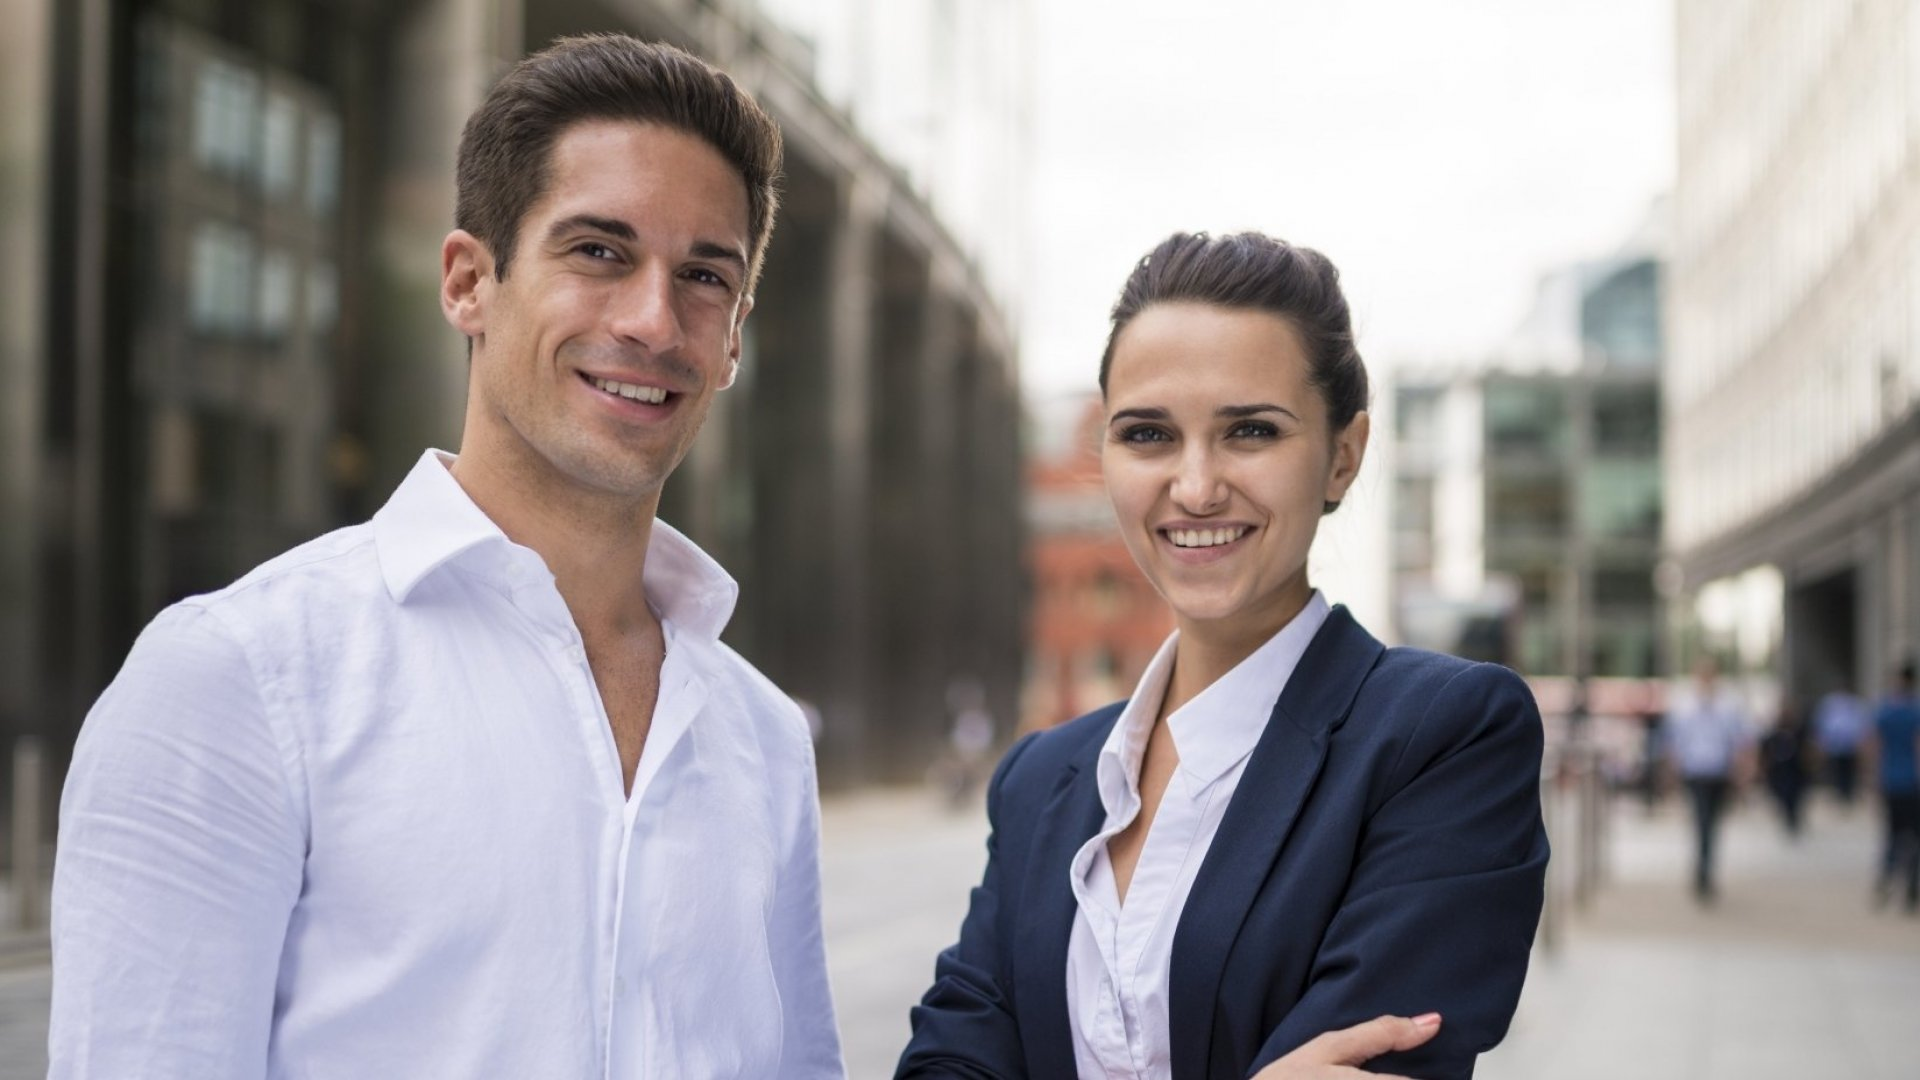 Married Co-Founders: The Highs and Lows of Starting a Business with My Spouse